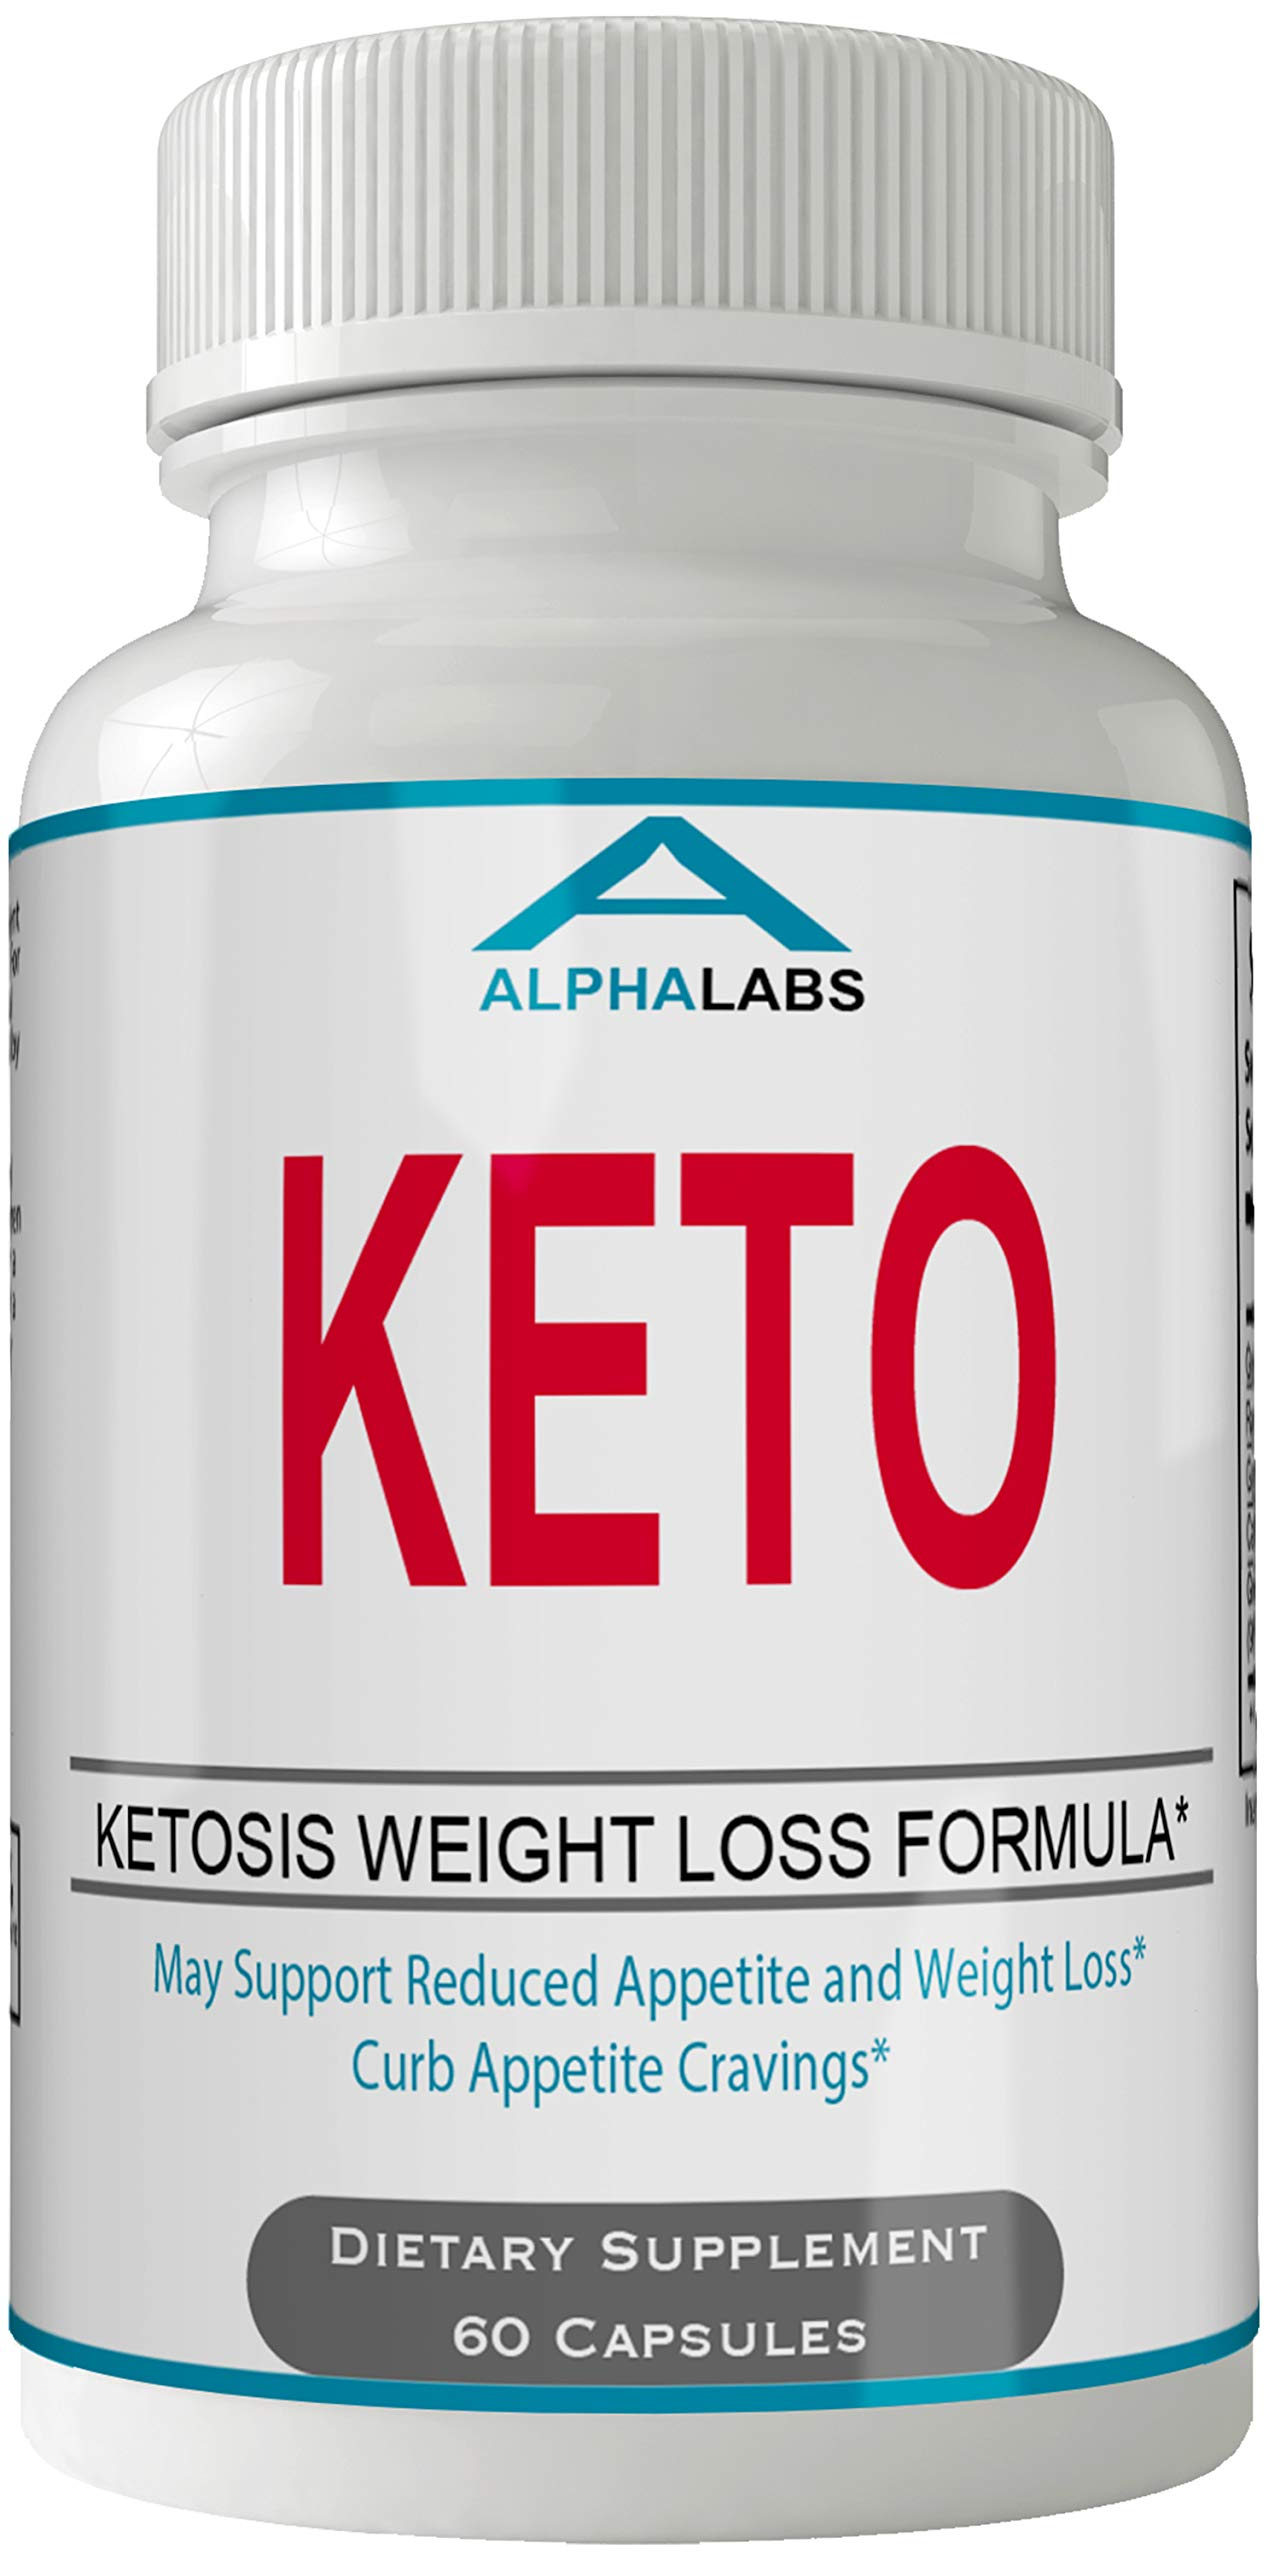 Alpha Labs Keto Weight Loss Diet Pills Advanced Energy Ketones Supplement Capsules by Alphalabs by nutra4health LLC